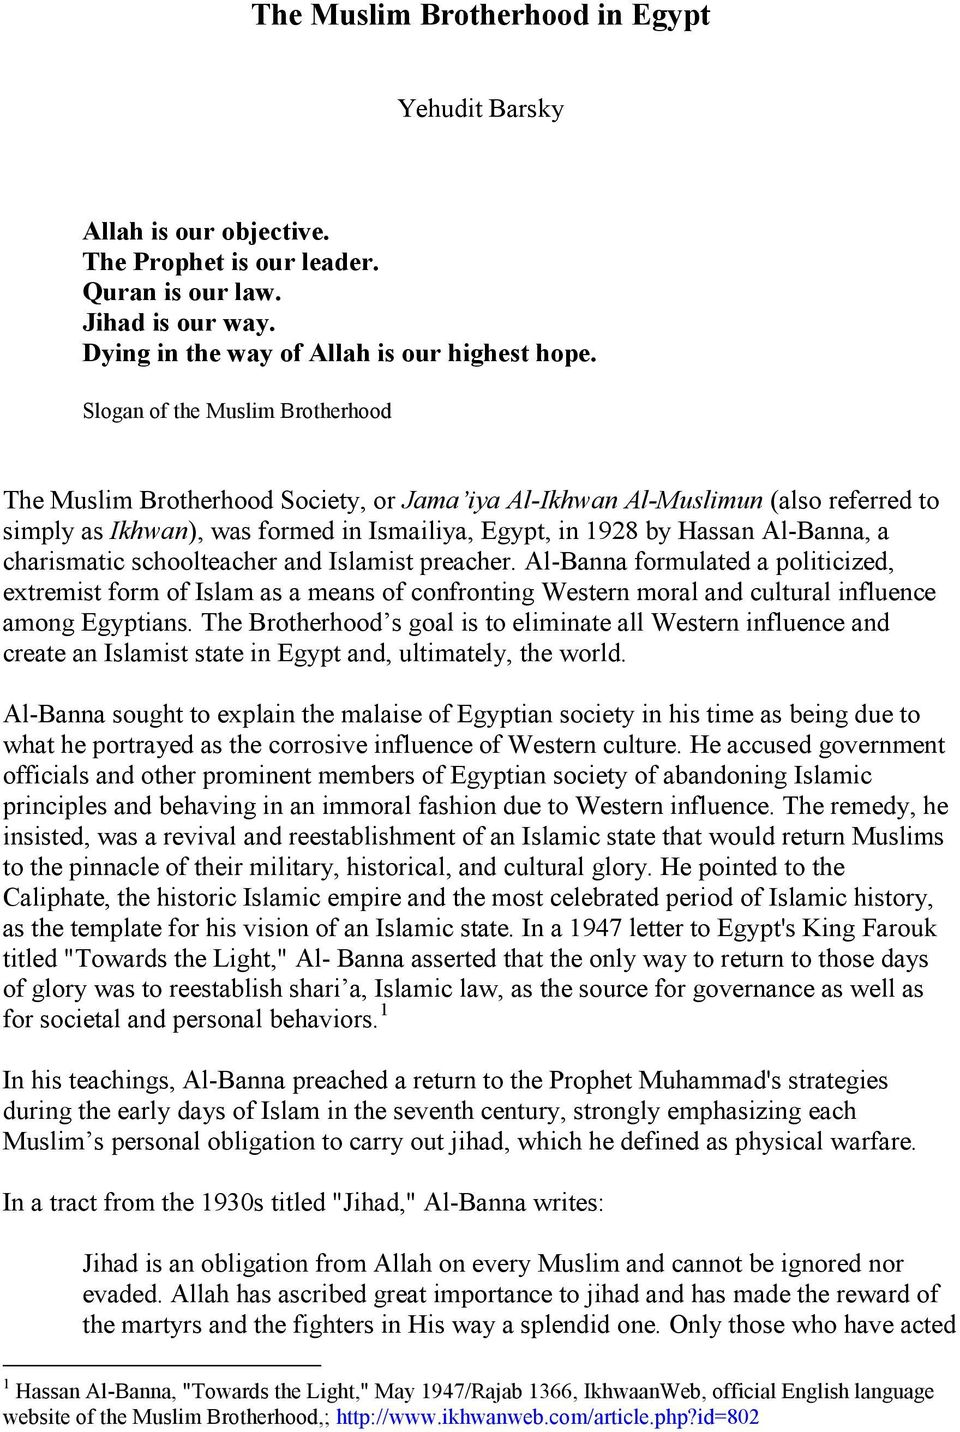 essay on muslim brotherhood in egypt